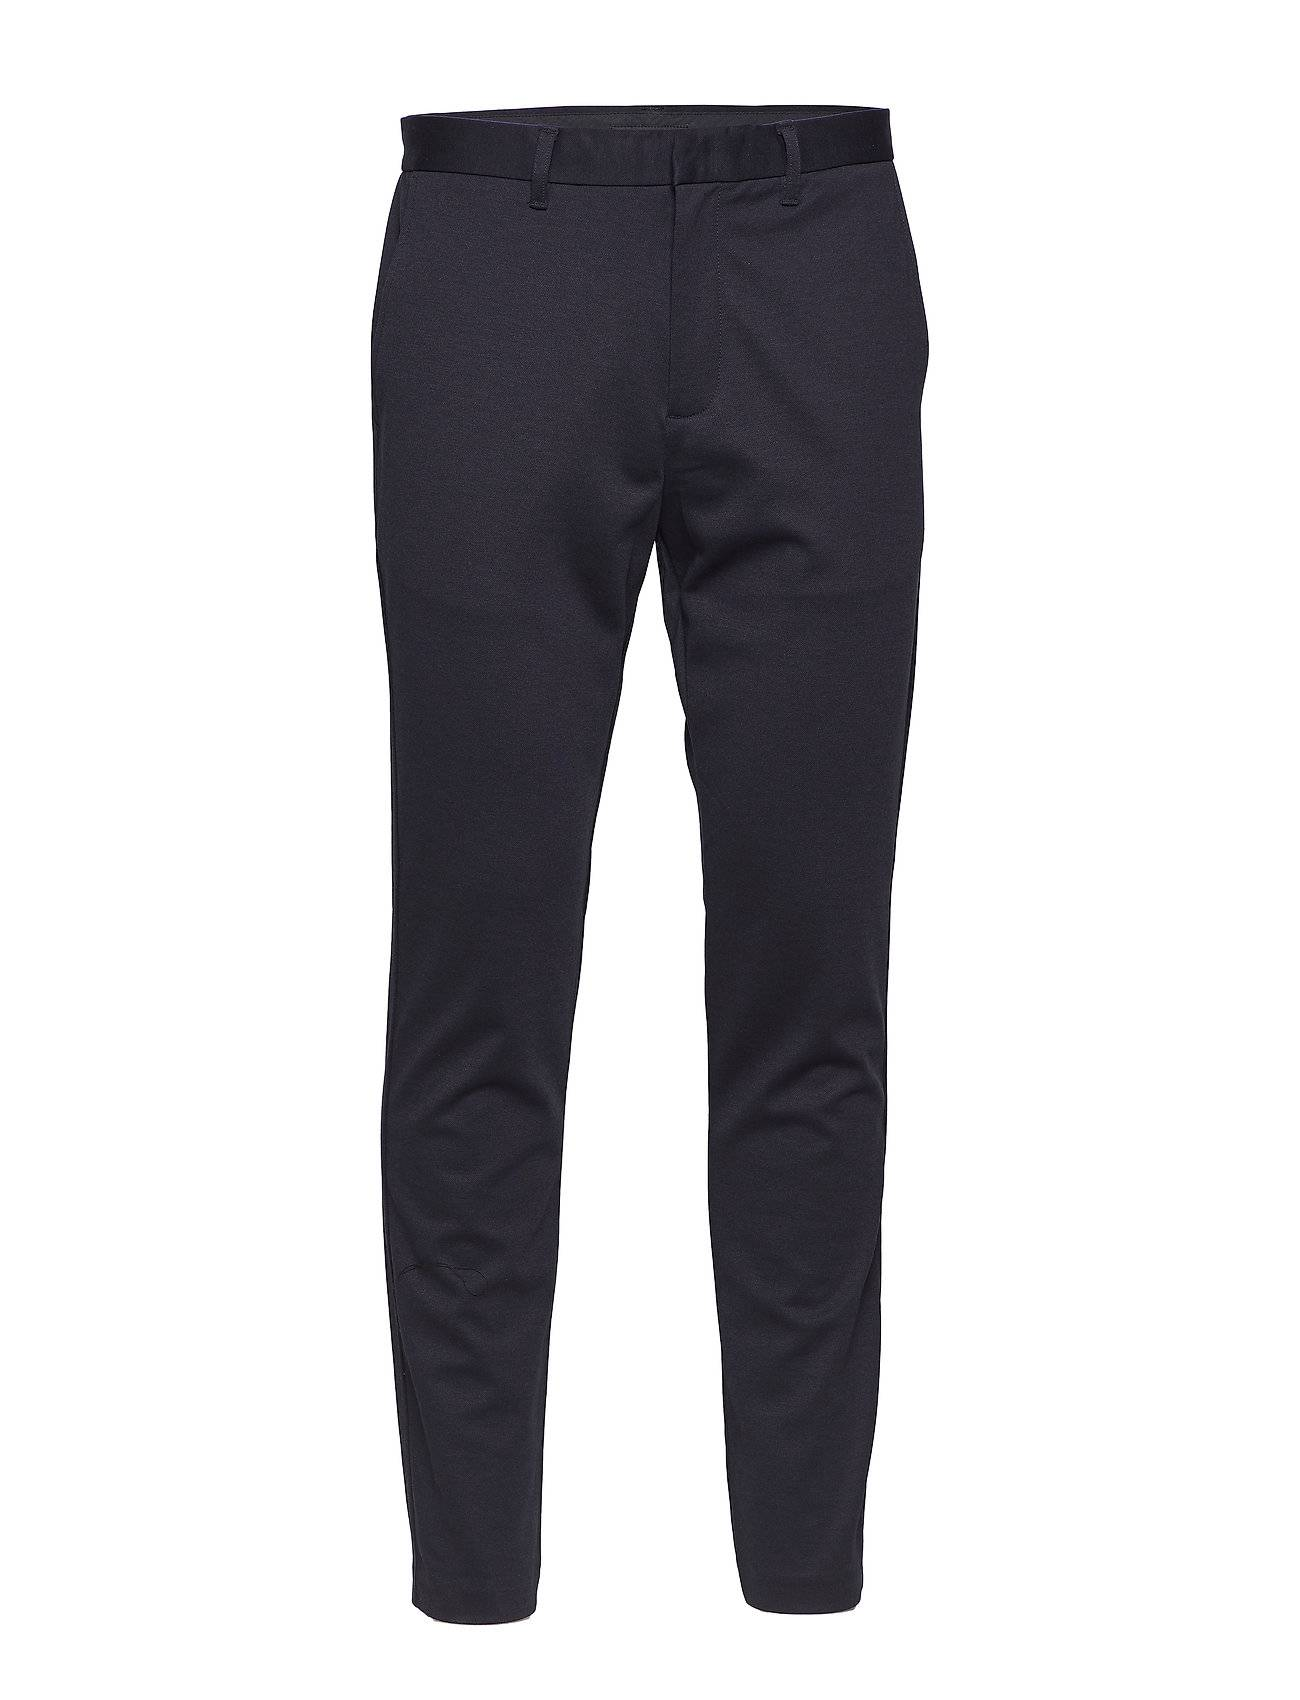 Matinique Paton Jersey Pant Formal Stretch